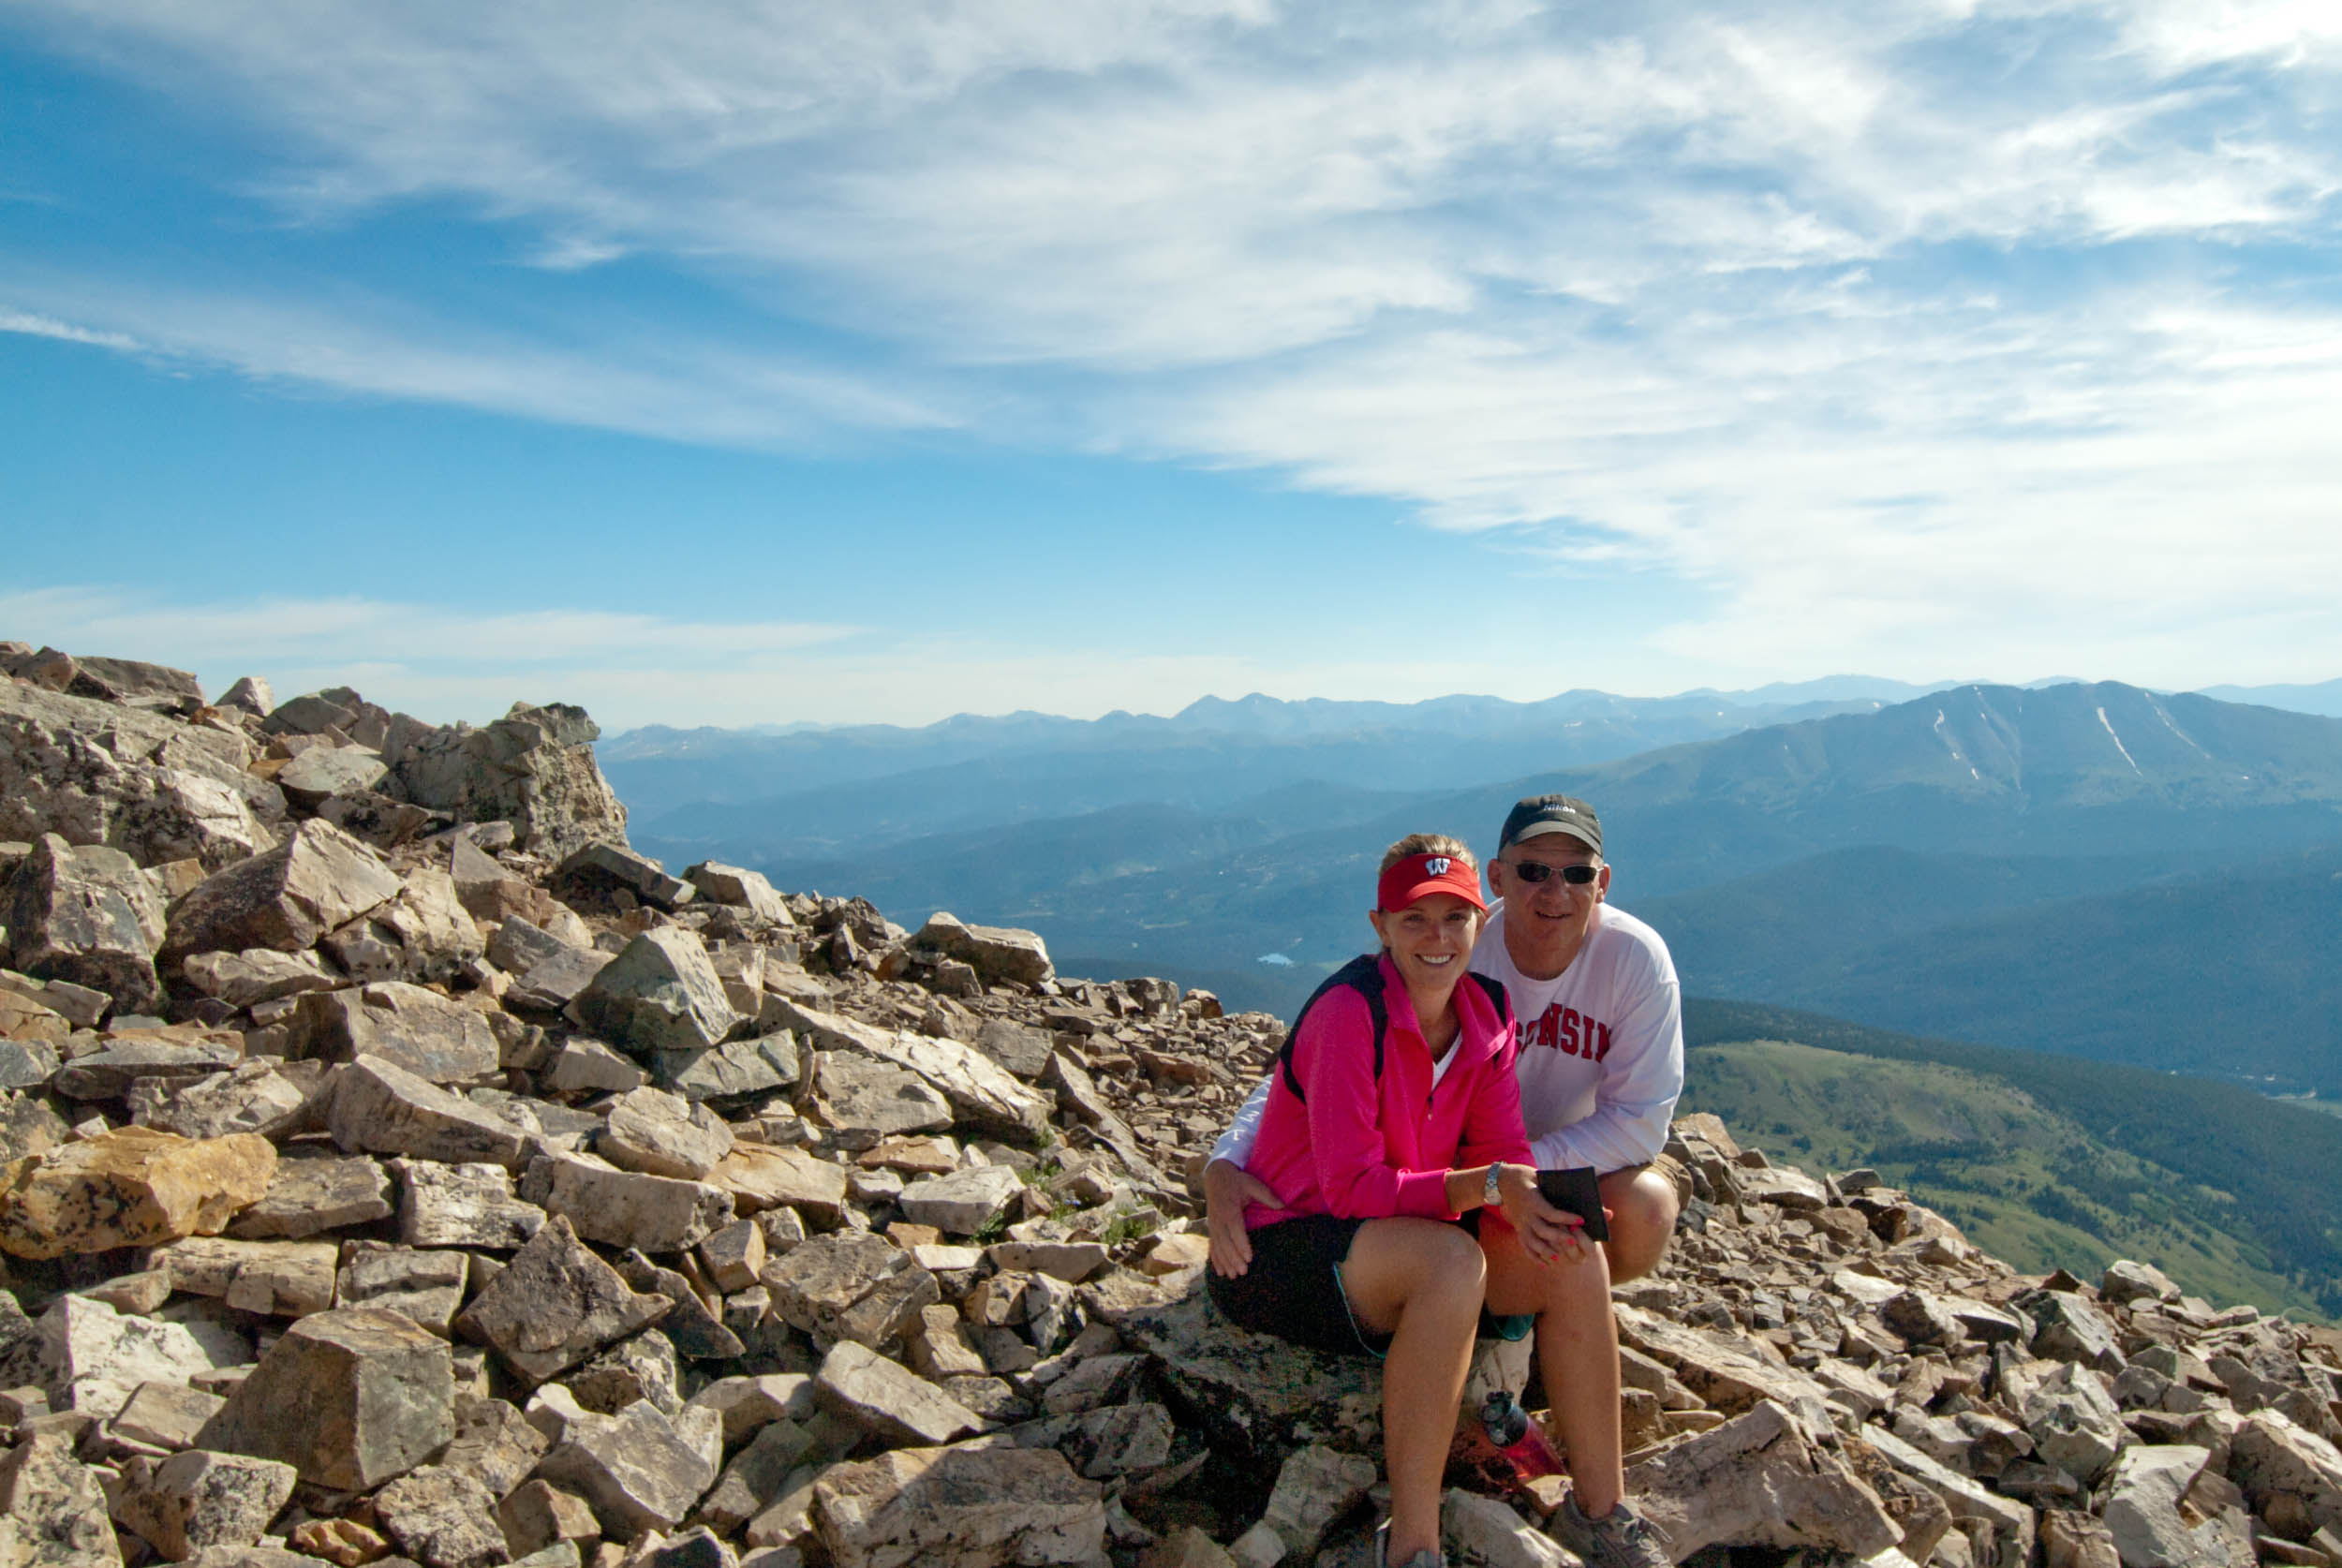 My wife, Sarah, and I near the top of Quandary Peak, Breckenridge, CO.